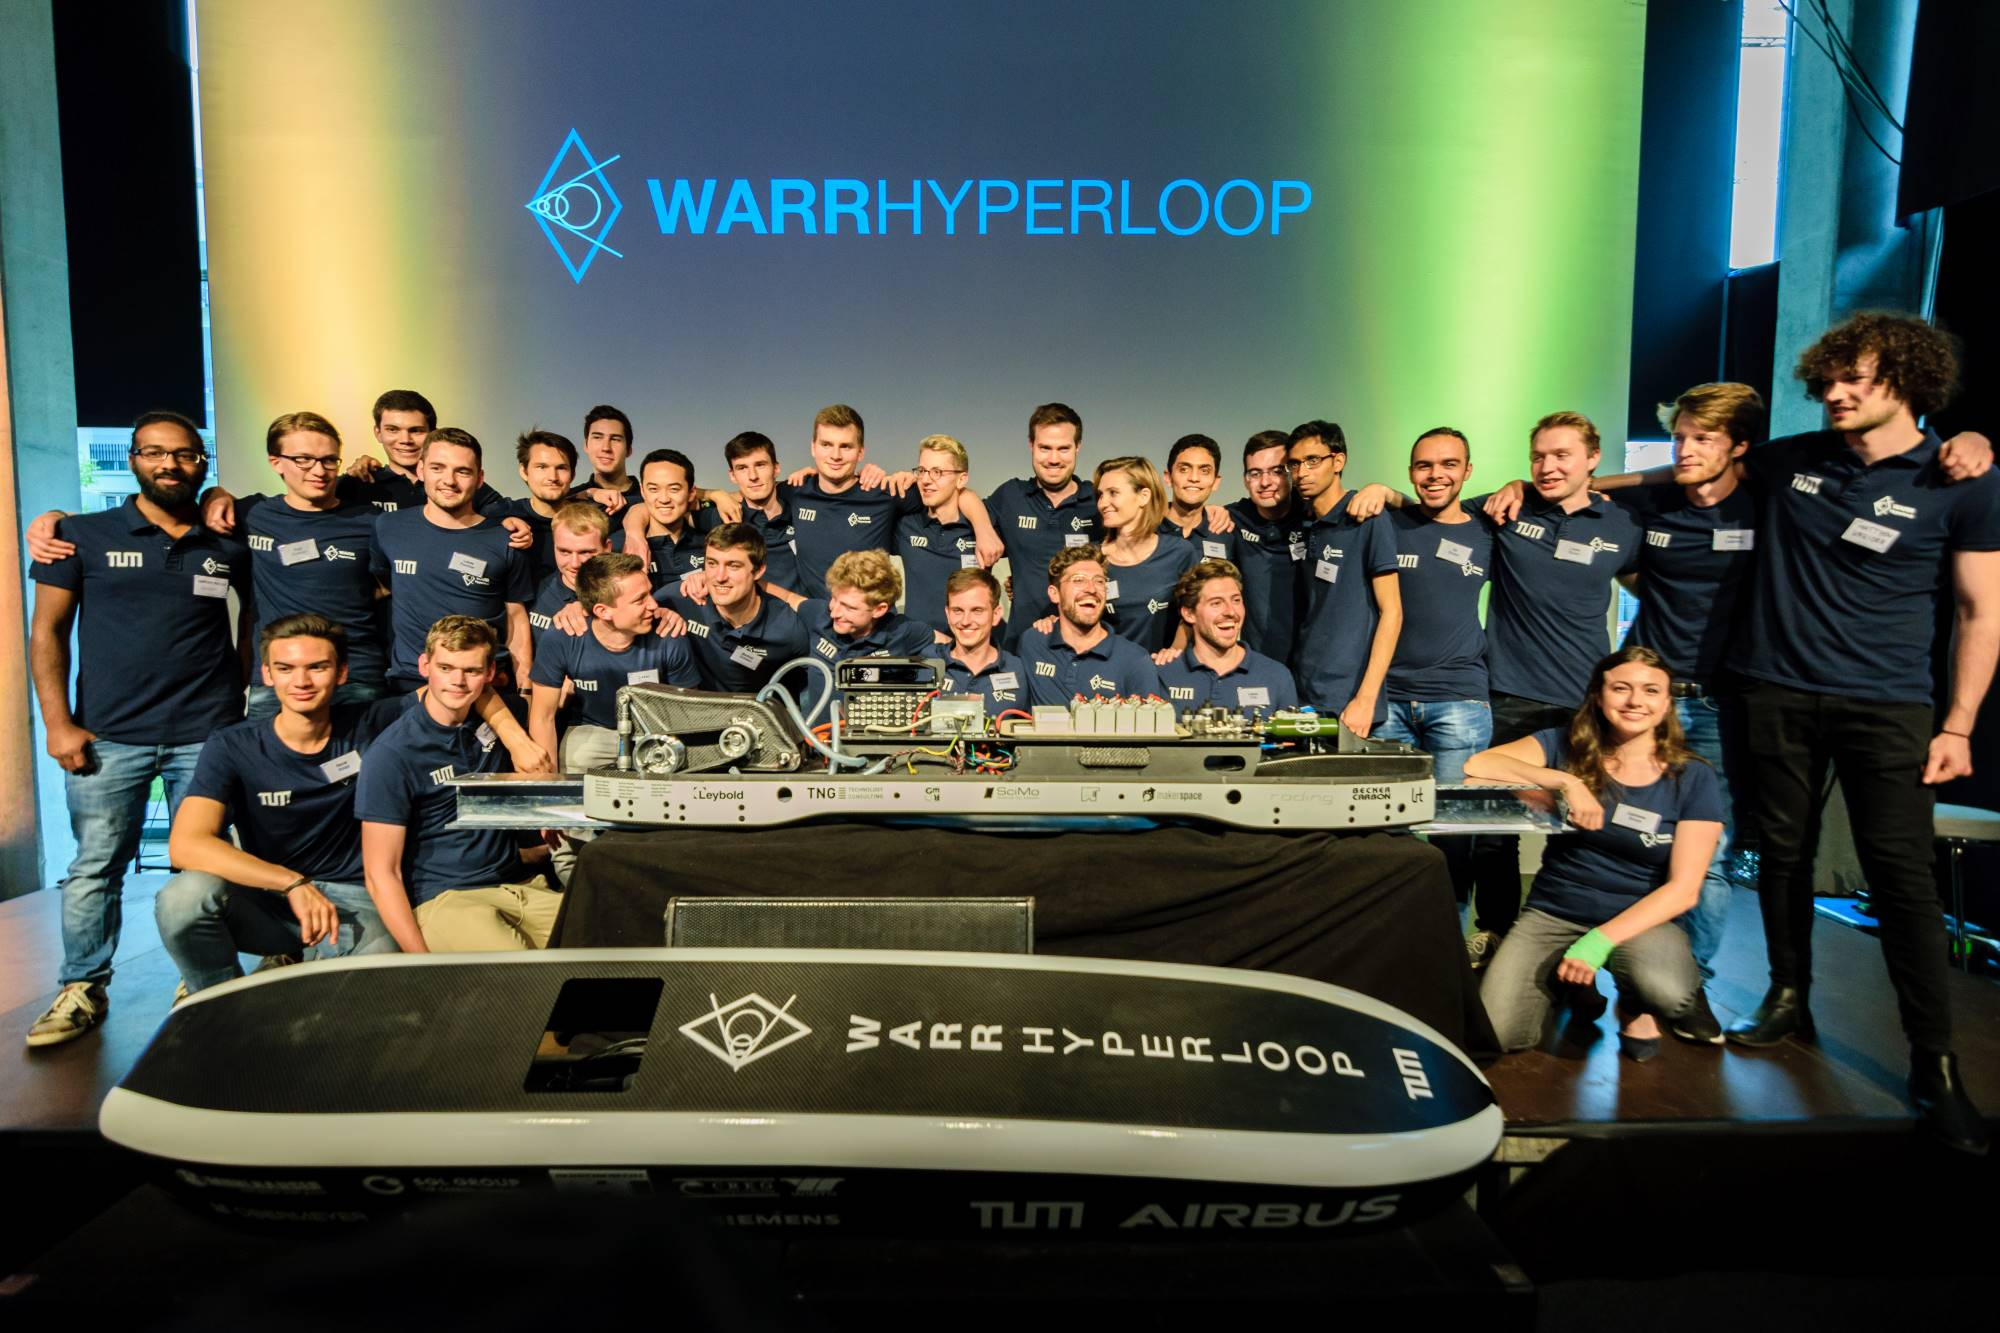 2017-08-16_warr-hyperloop_team